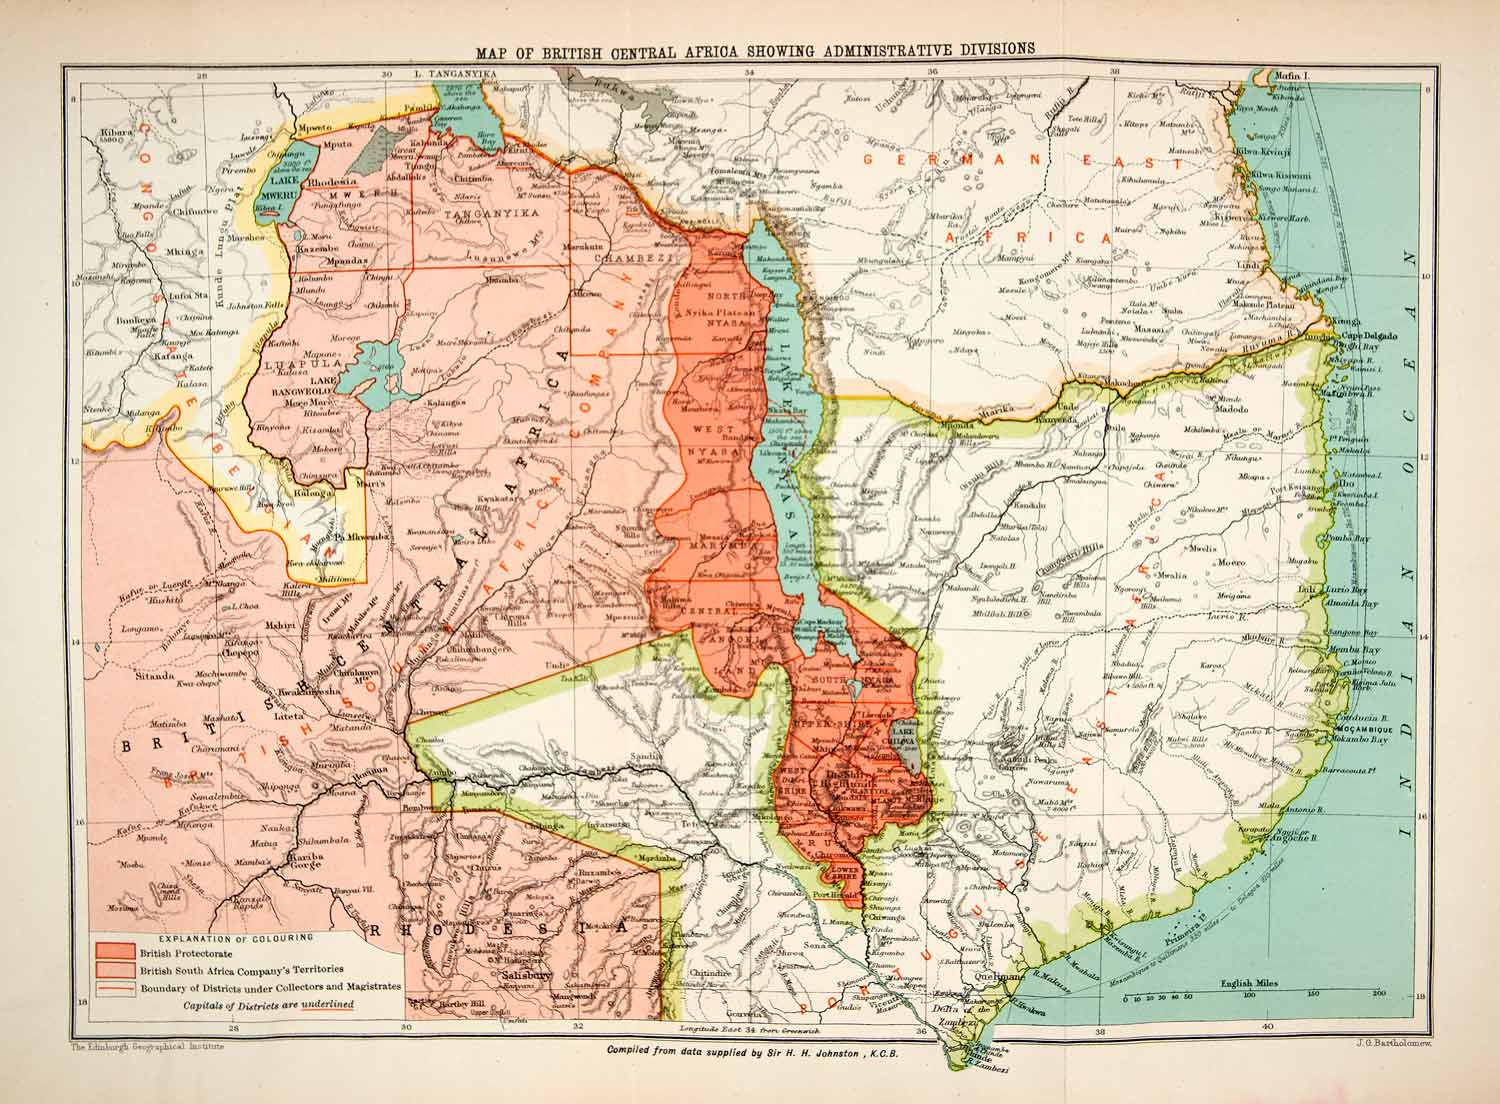 1898 Lithograph Map British Central Africa Administrative Divisions